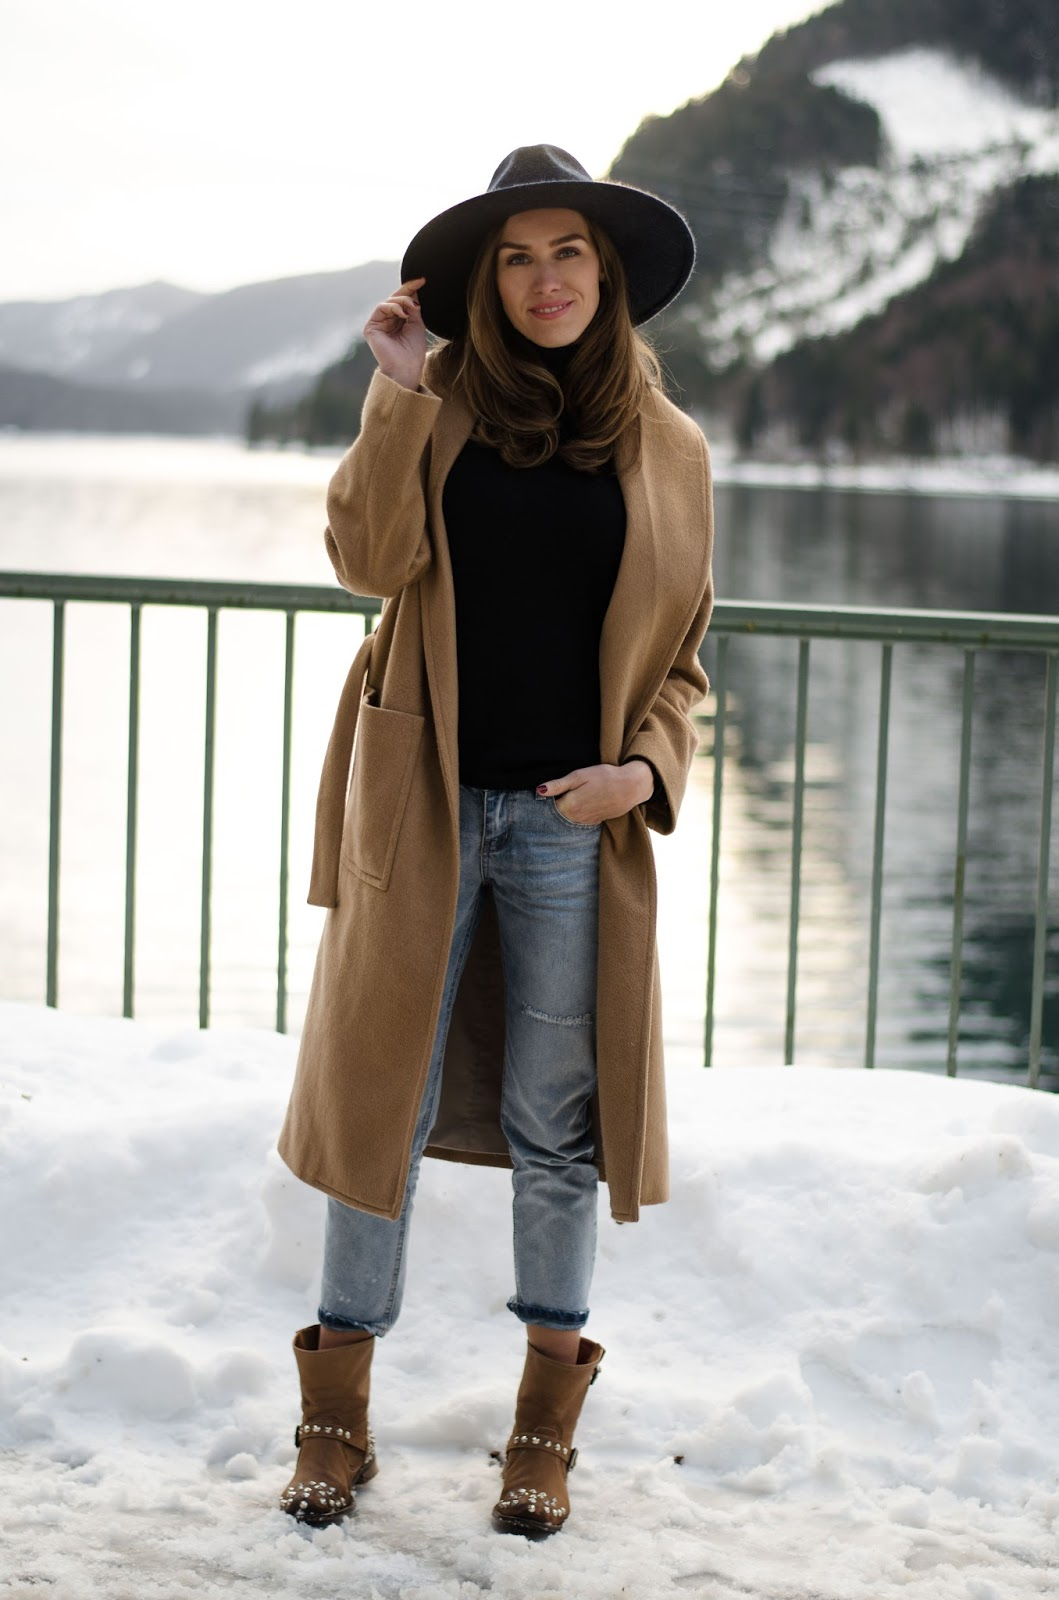 kristjaana mere camel coat boyfriend jeans ankle boots fedora winter outfit